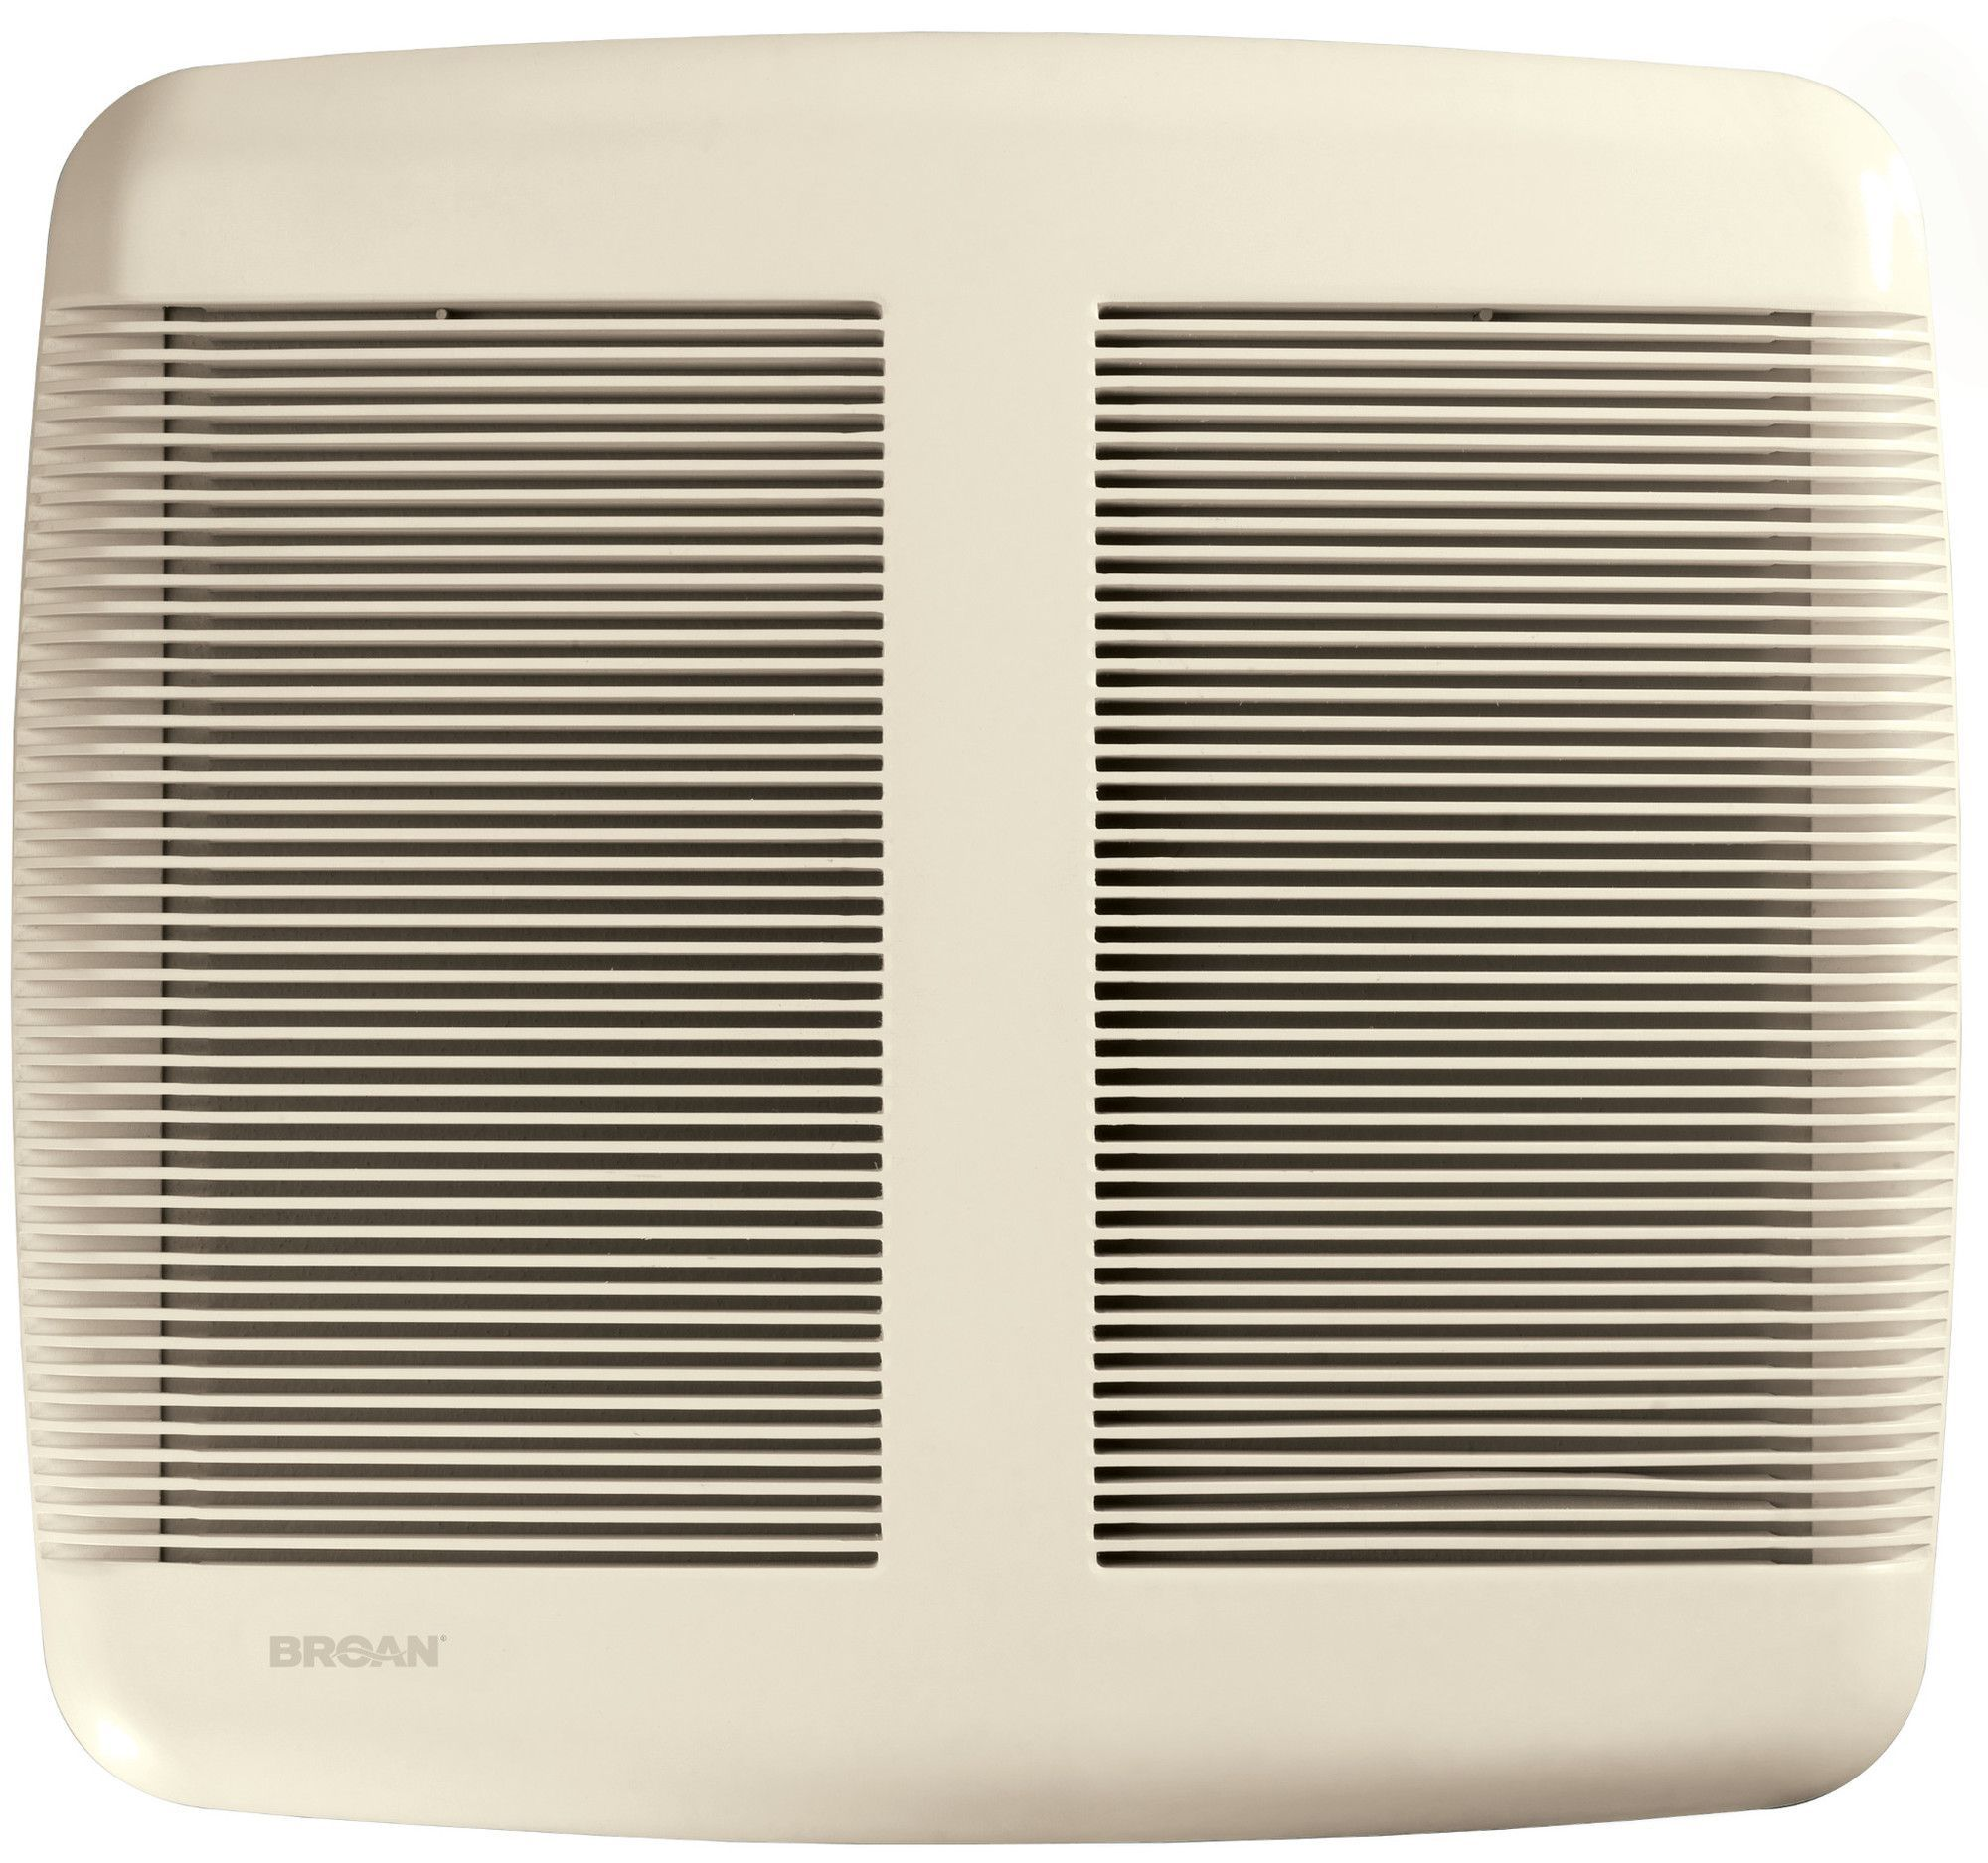 f79b1332075 110 CFM Energy Star Bathroom Fan with Grille